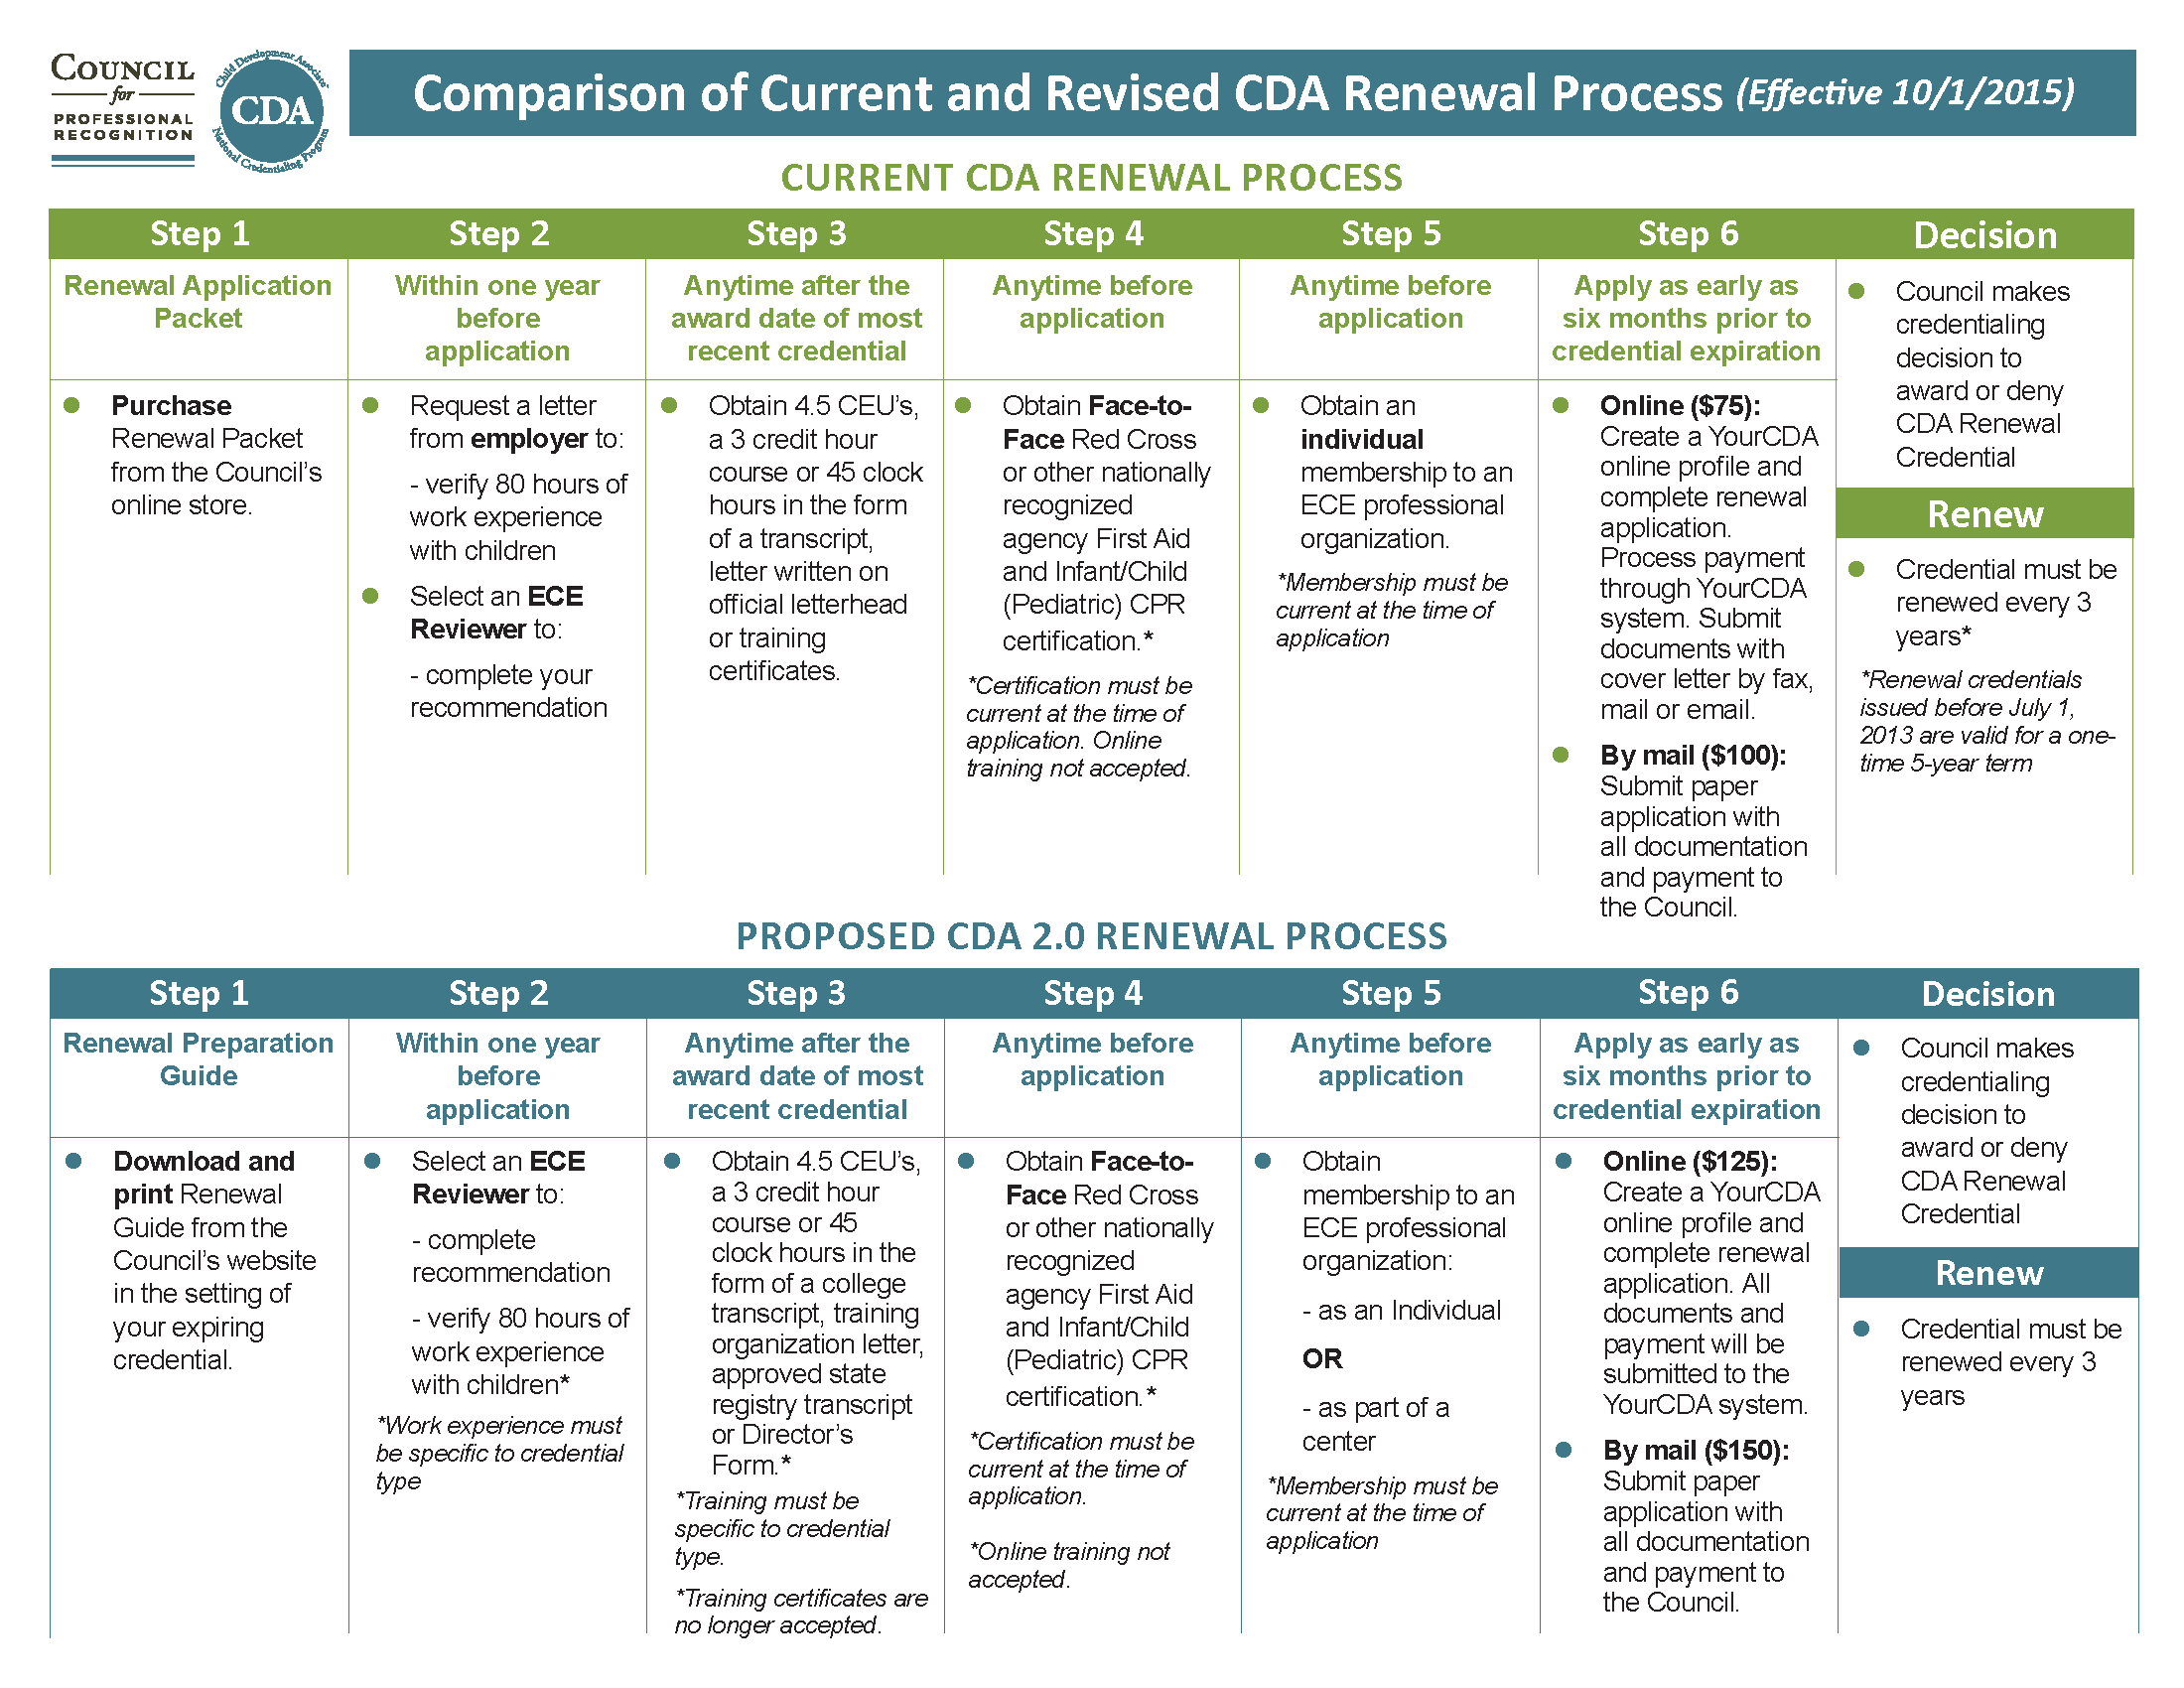 Renew cda council for professional recognition learn more about the new cda renewal process xflitez Images